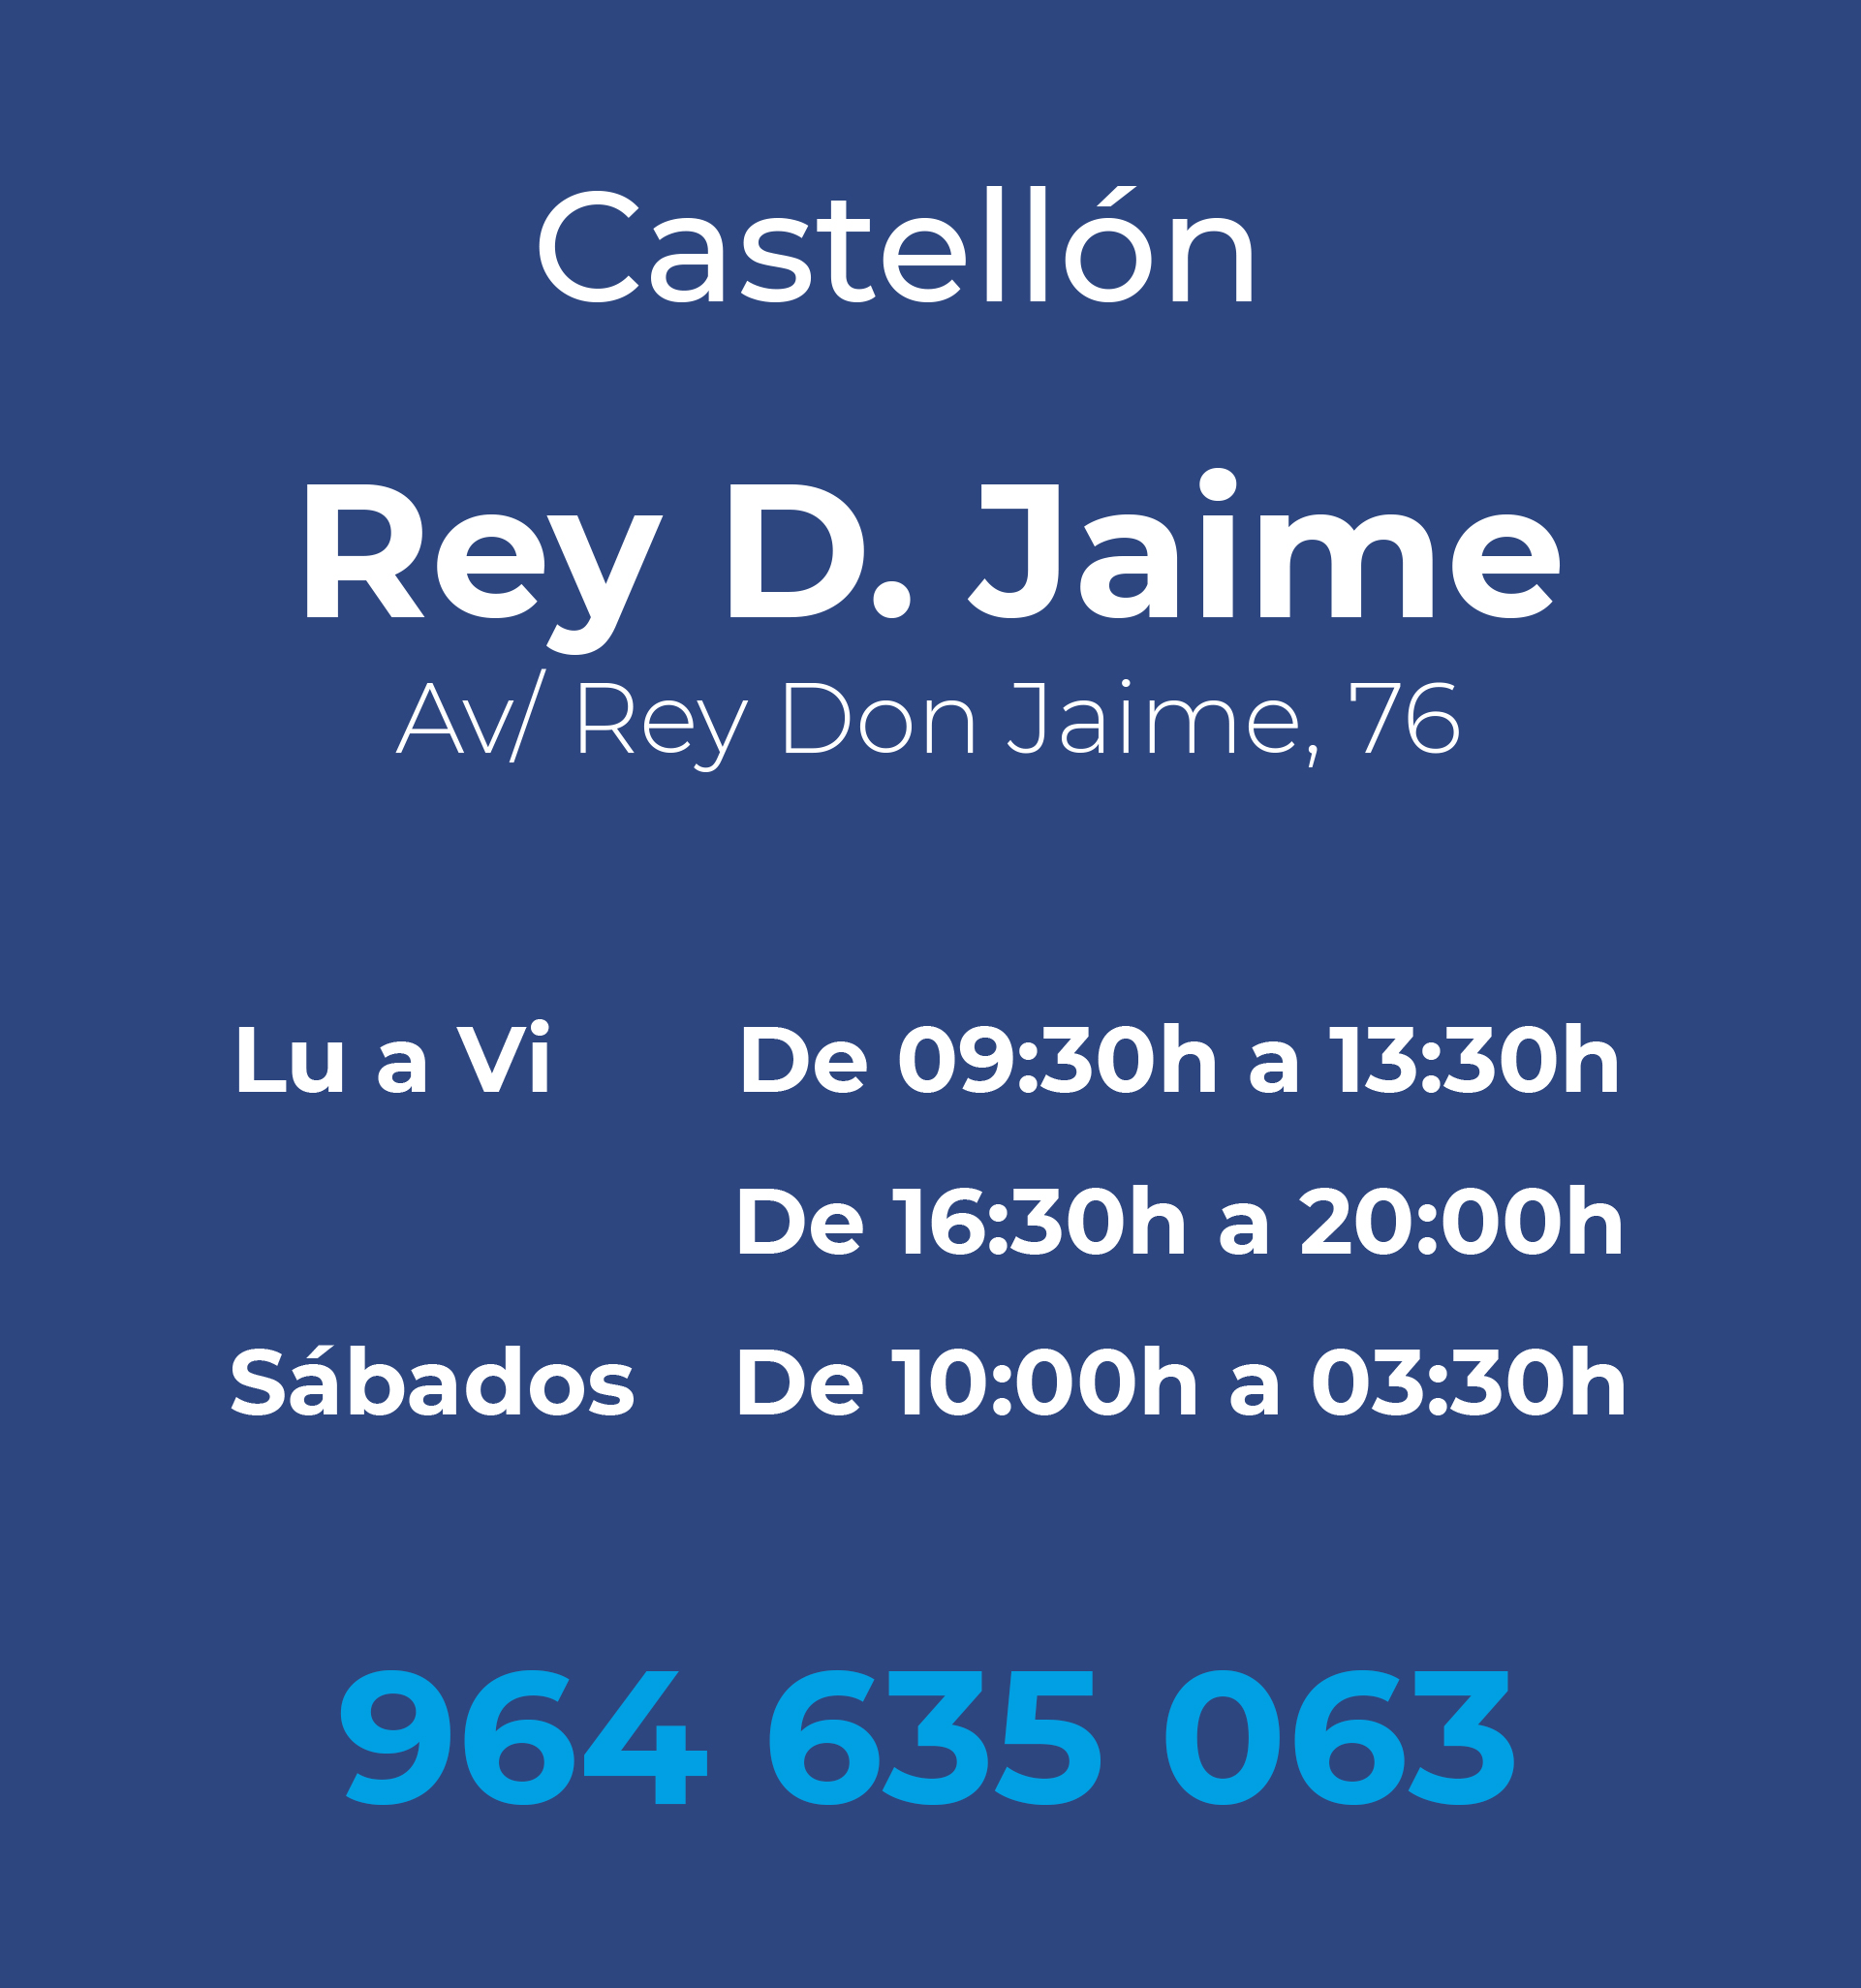 Castellon Don Jaime